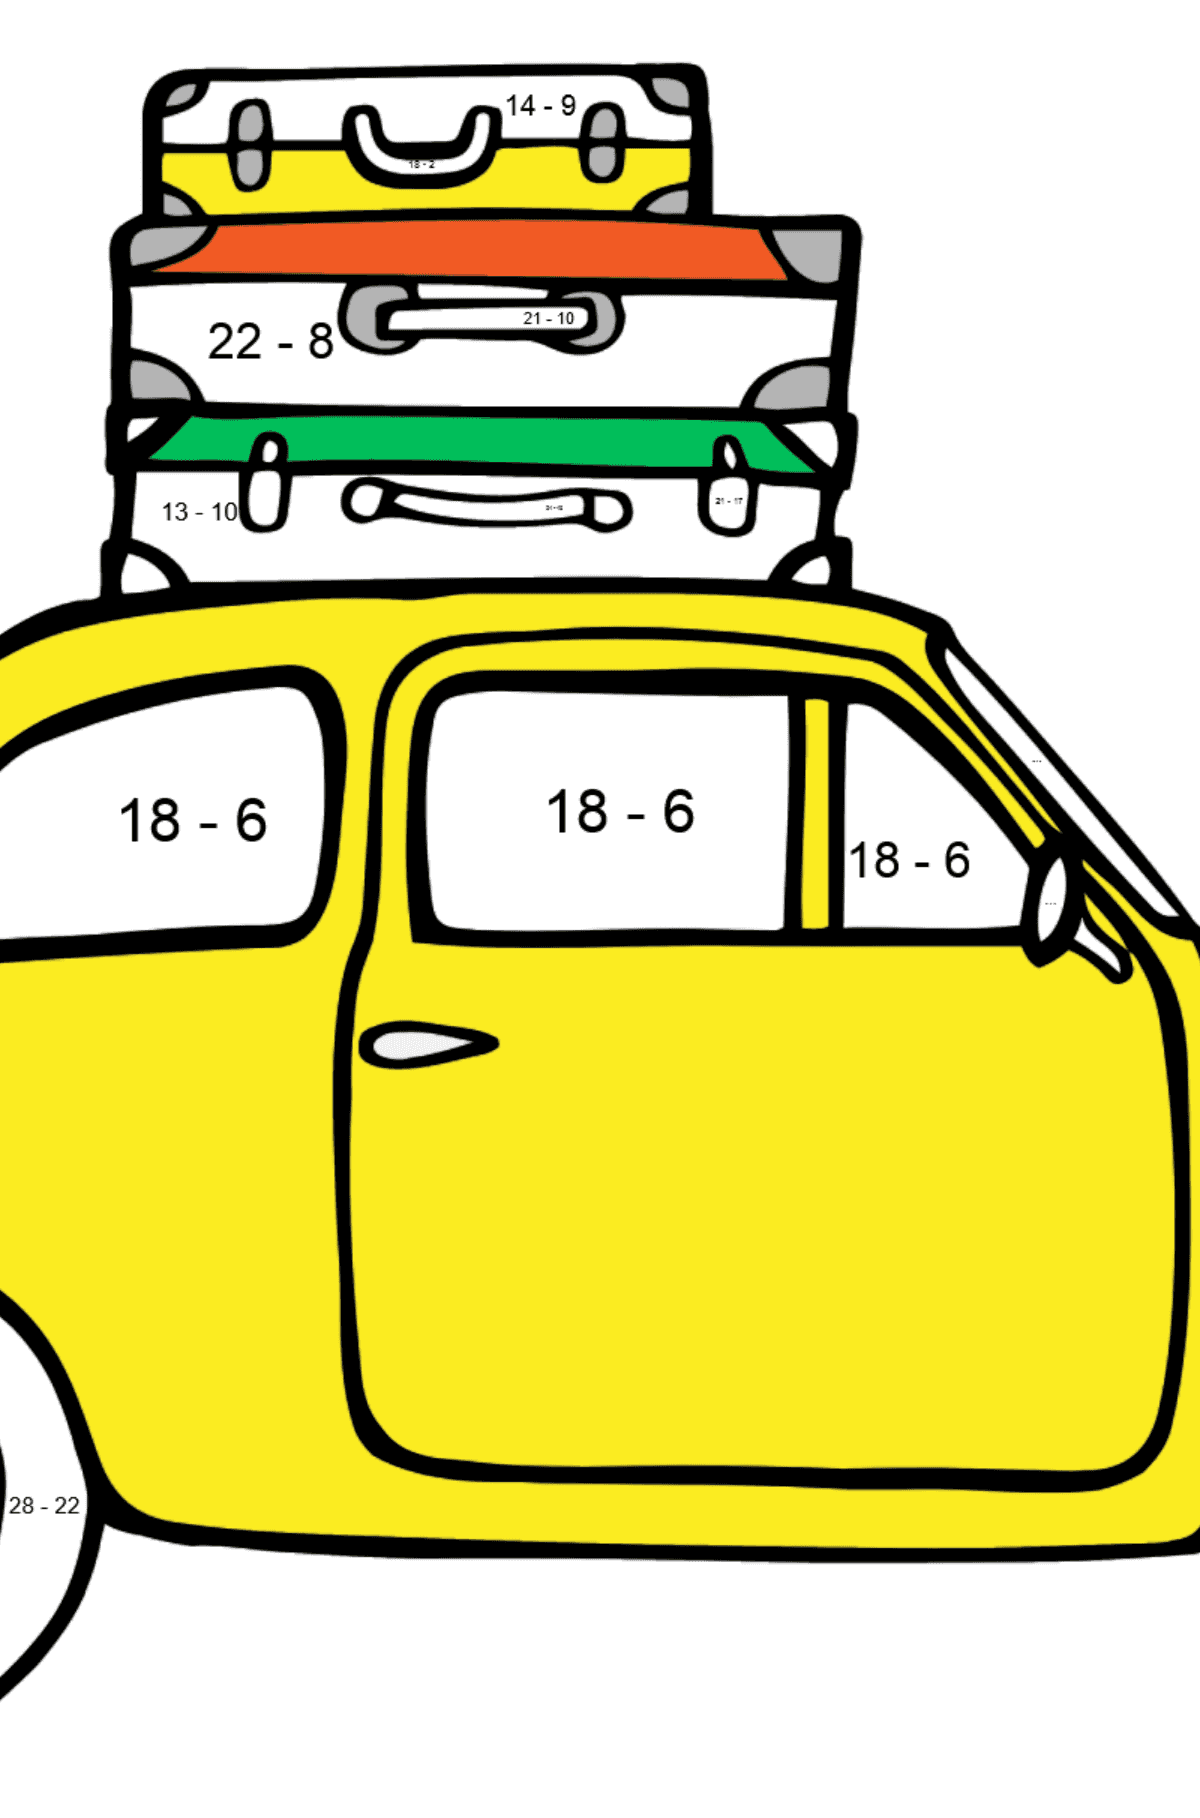 Fiat 600 car coloring page - Math Coloring - Subtraction for Kids